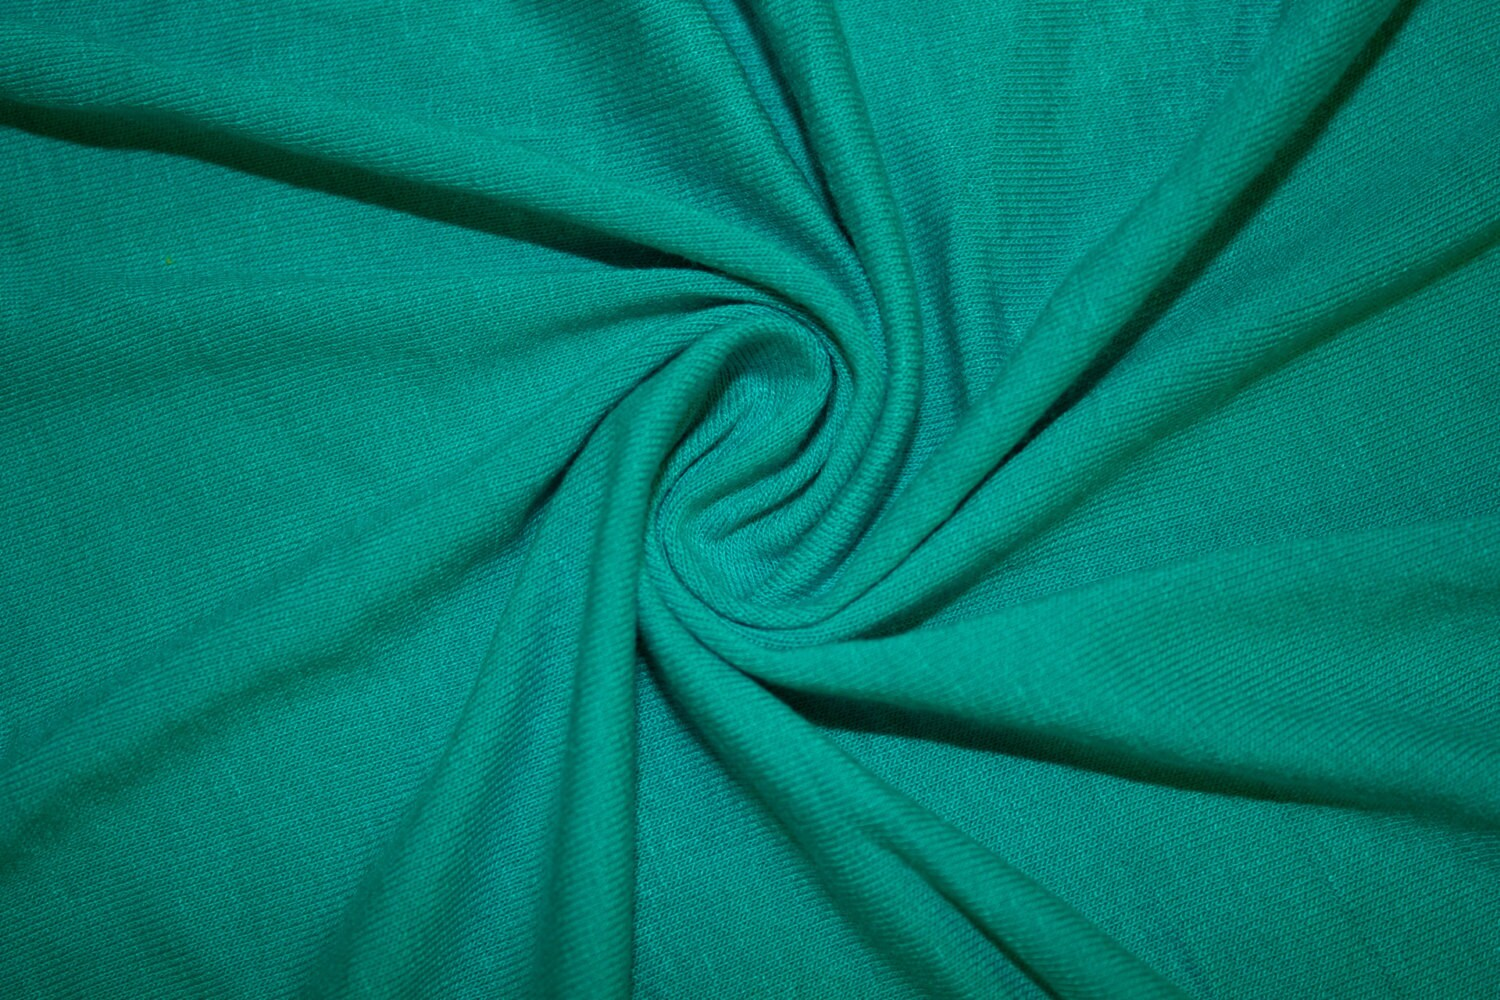 Teal 190 gsm jersey knit 95 viscose rayon 5 spandex lycra for Spandex fabric